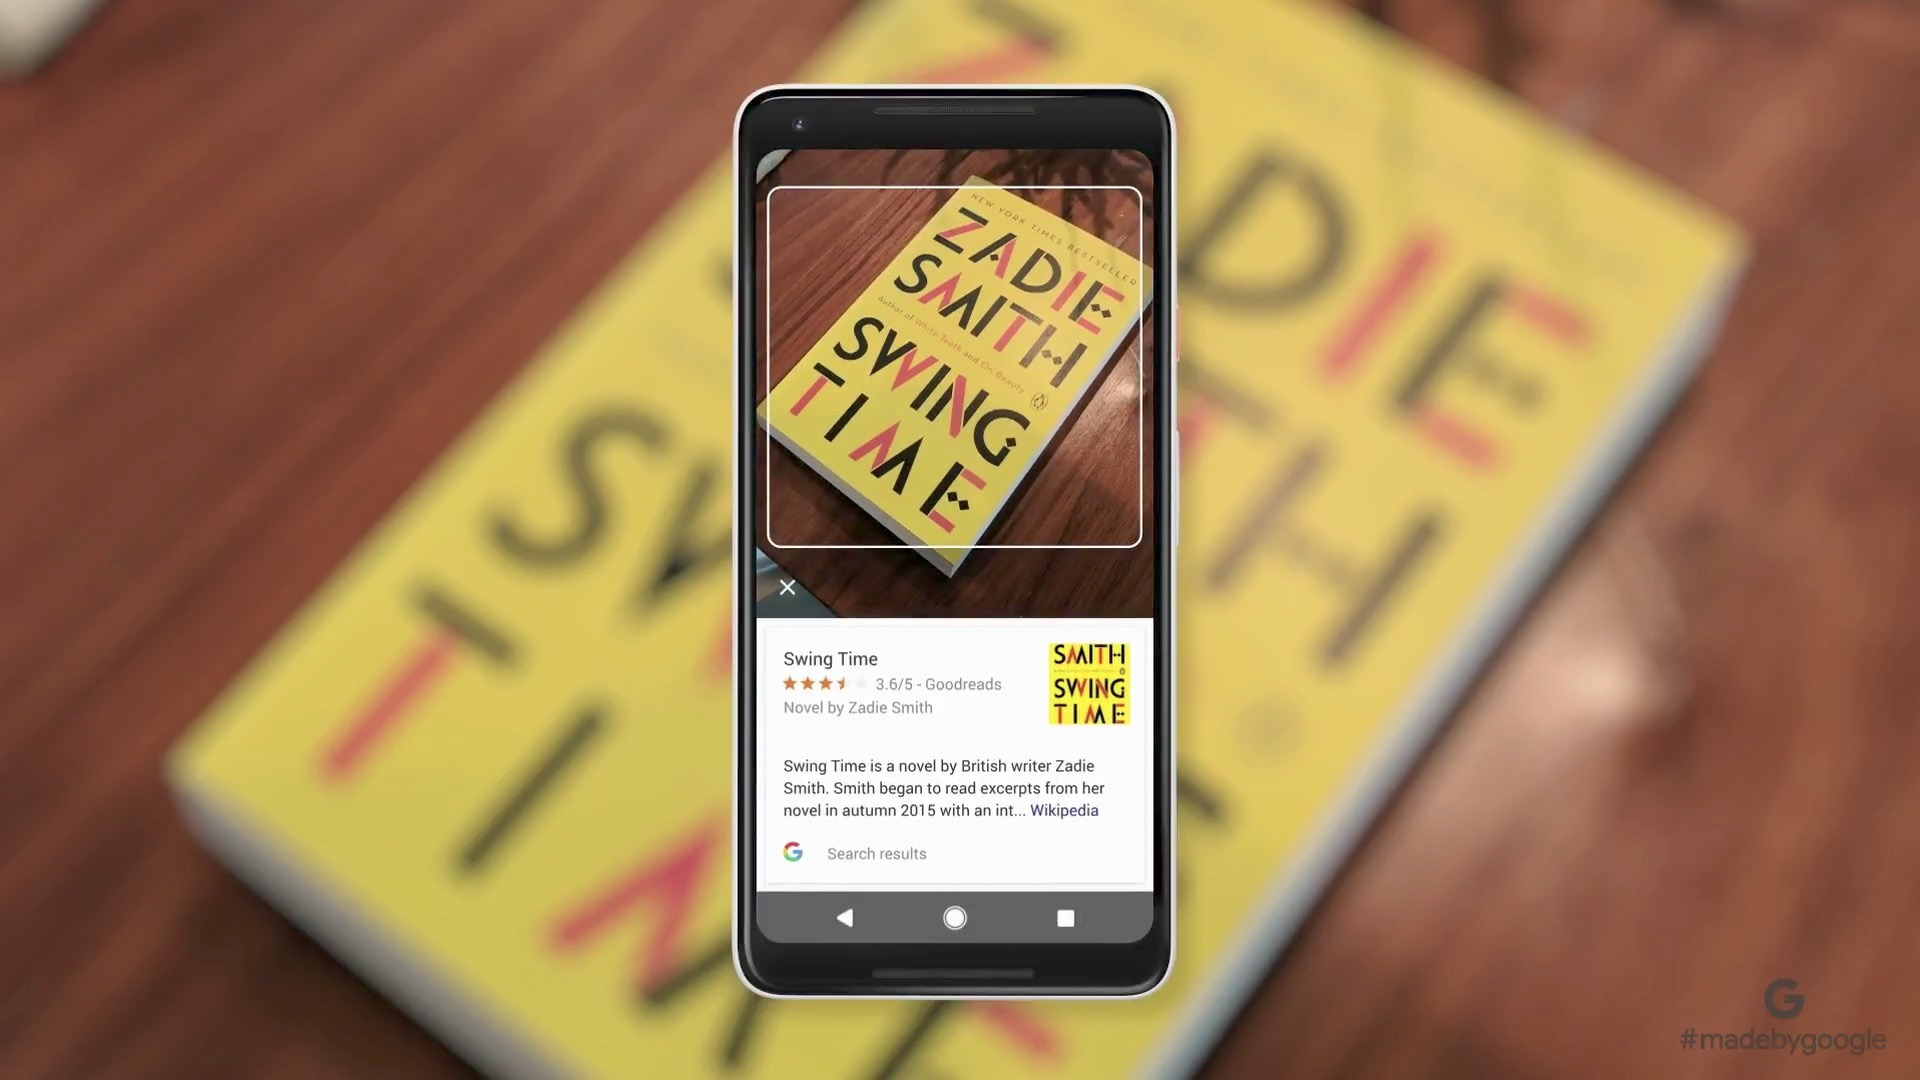 Google Lens is now available for every Android phone via Google Photos 1